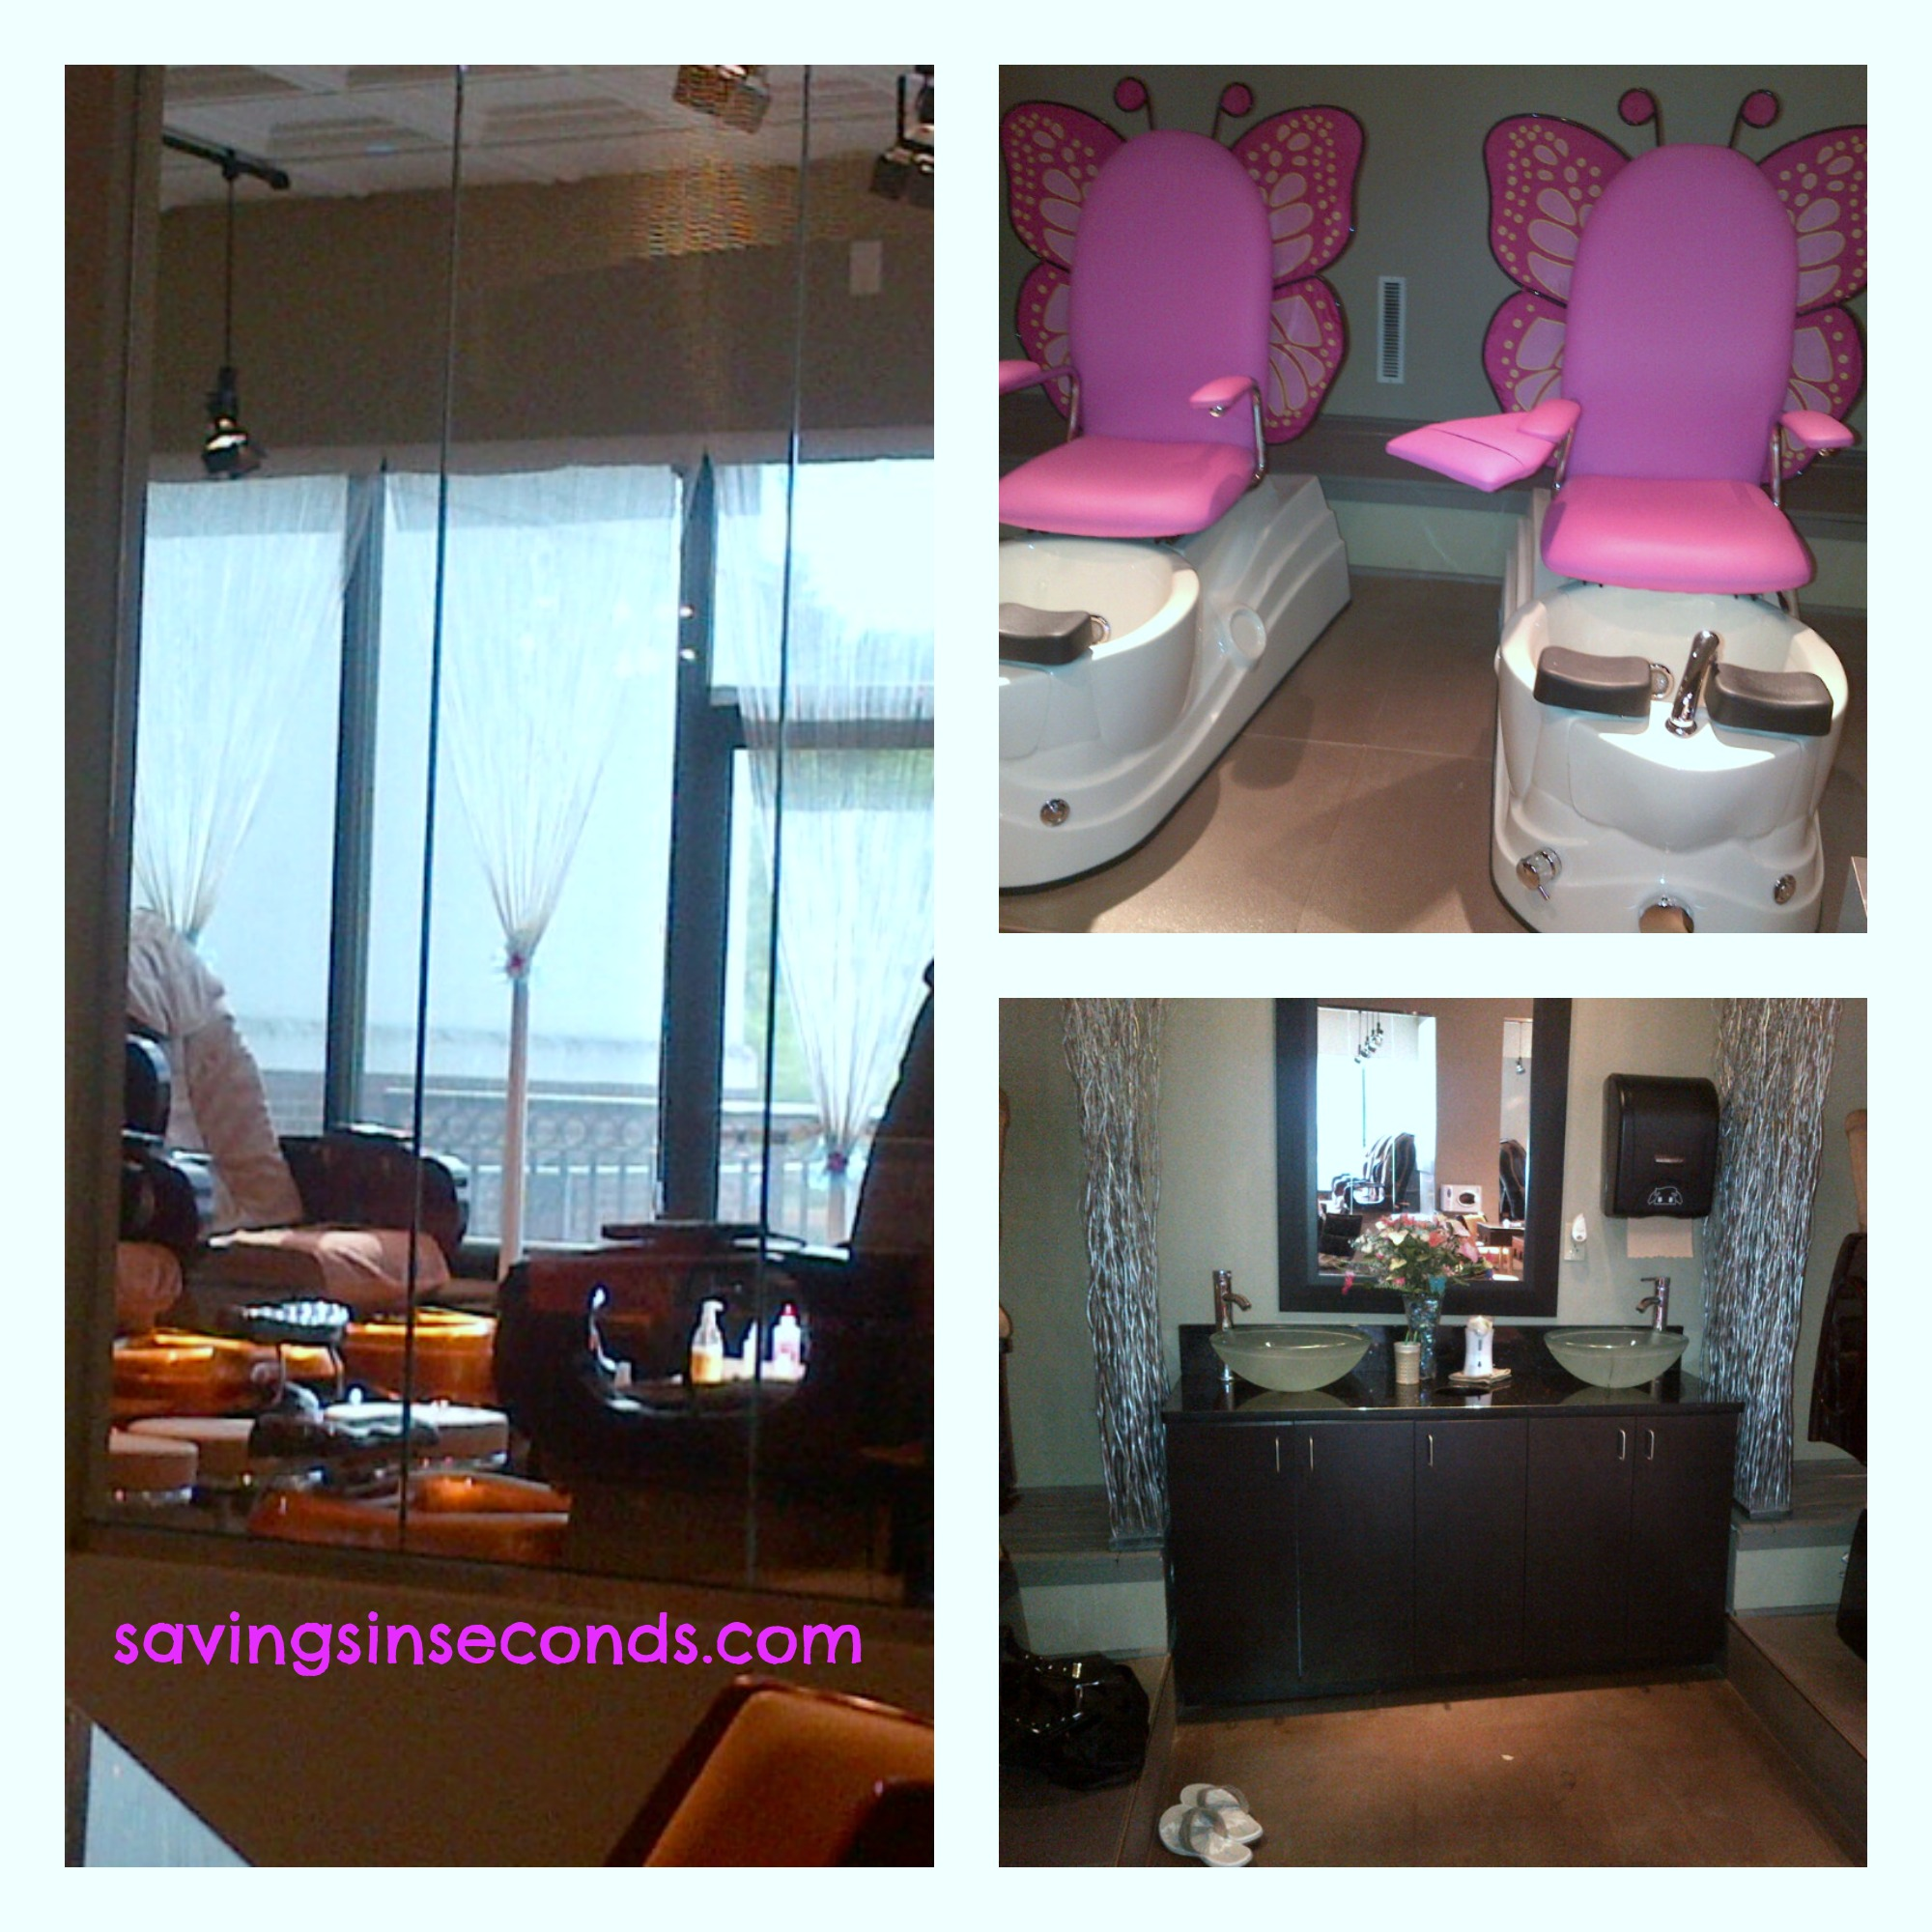 LUX Nail Spa and Salon in Kingsport - featured on savingsinseconds ...